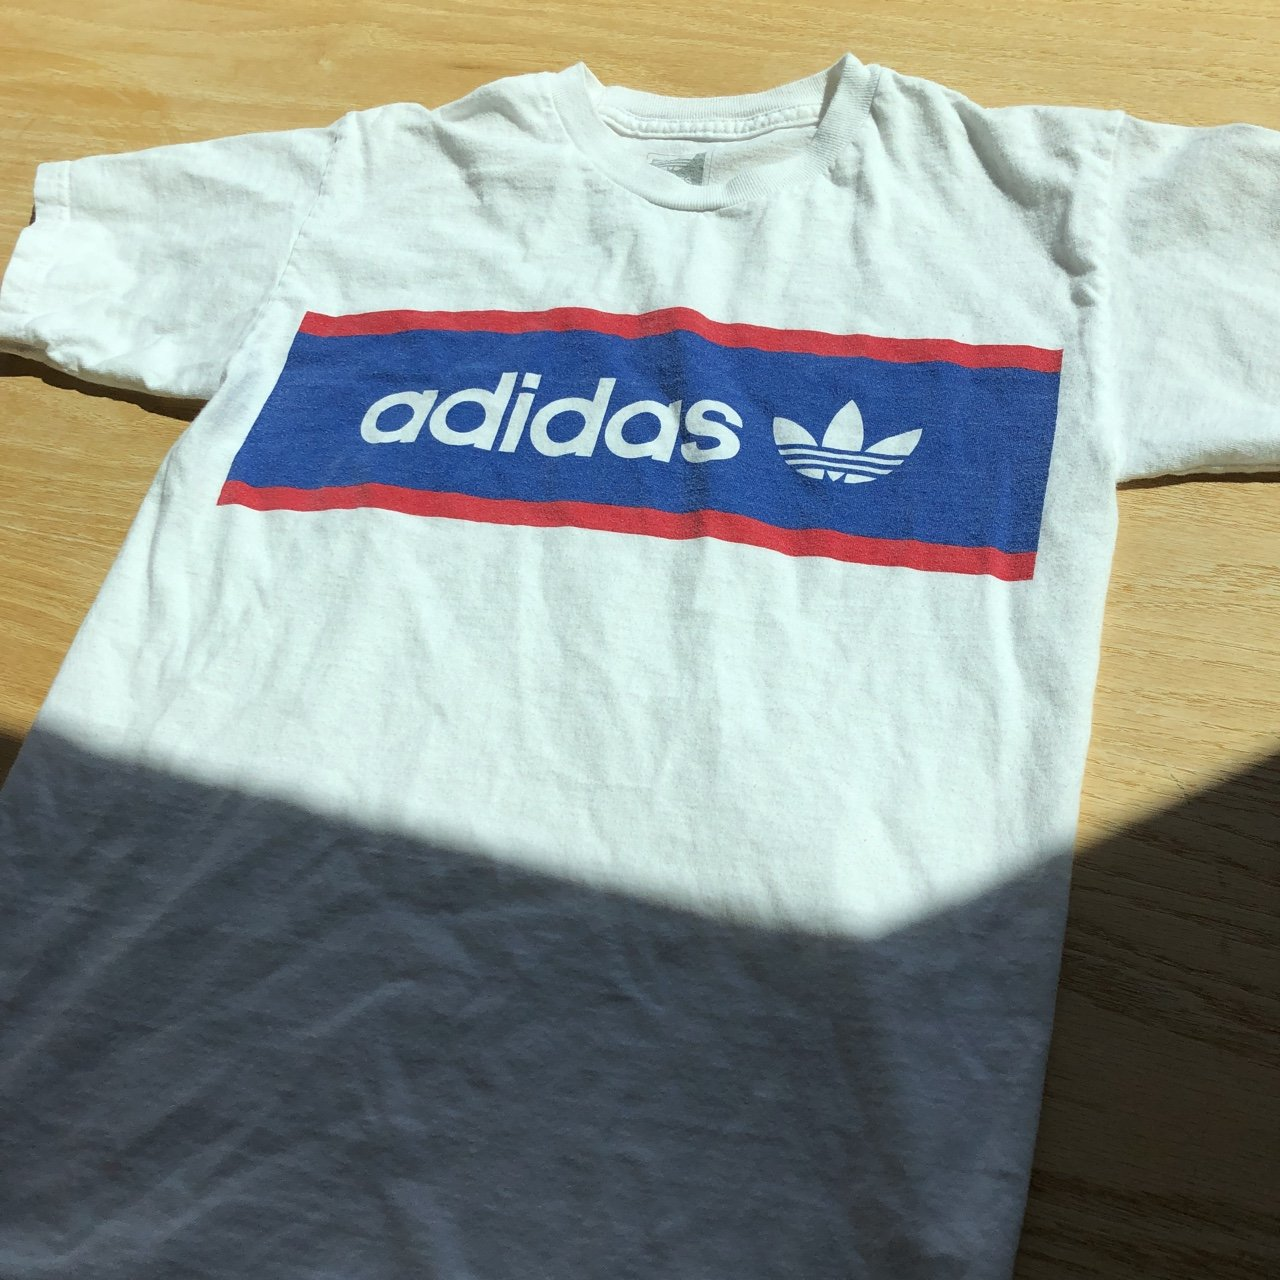 48e73d750695 Adidas trefoil logo red white and blue tee - worn